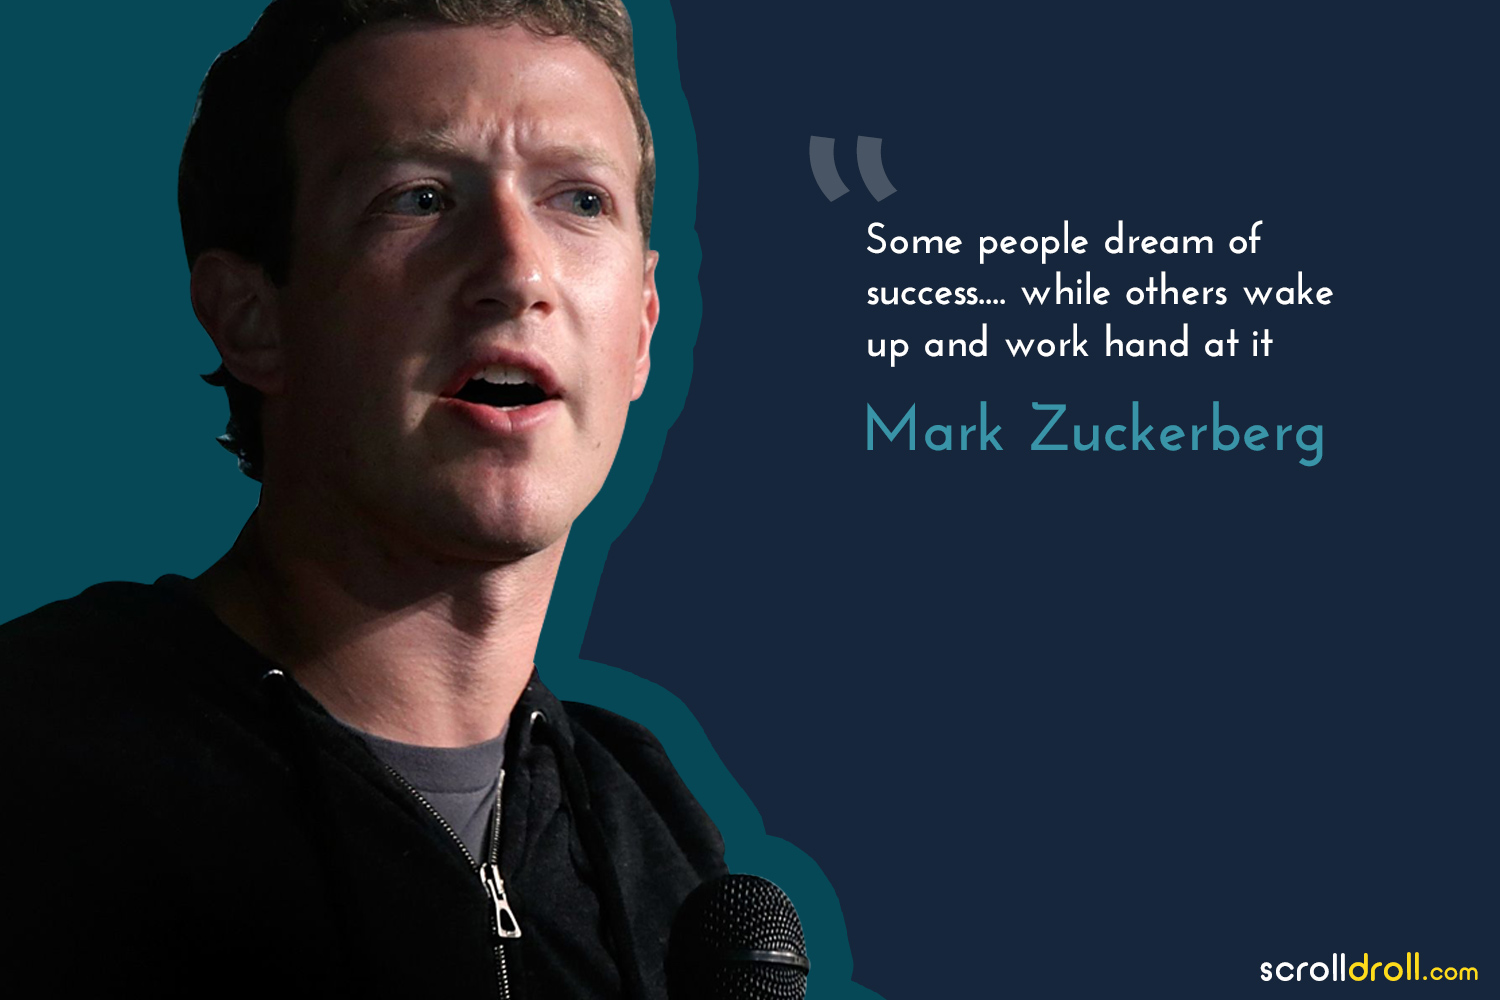 Powerful Quotes By Successful People-quote by mark zuckerberg